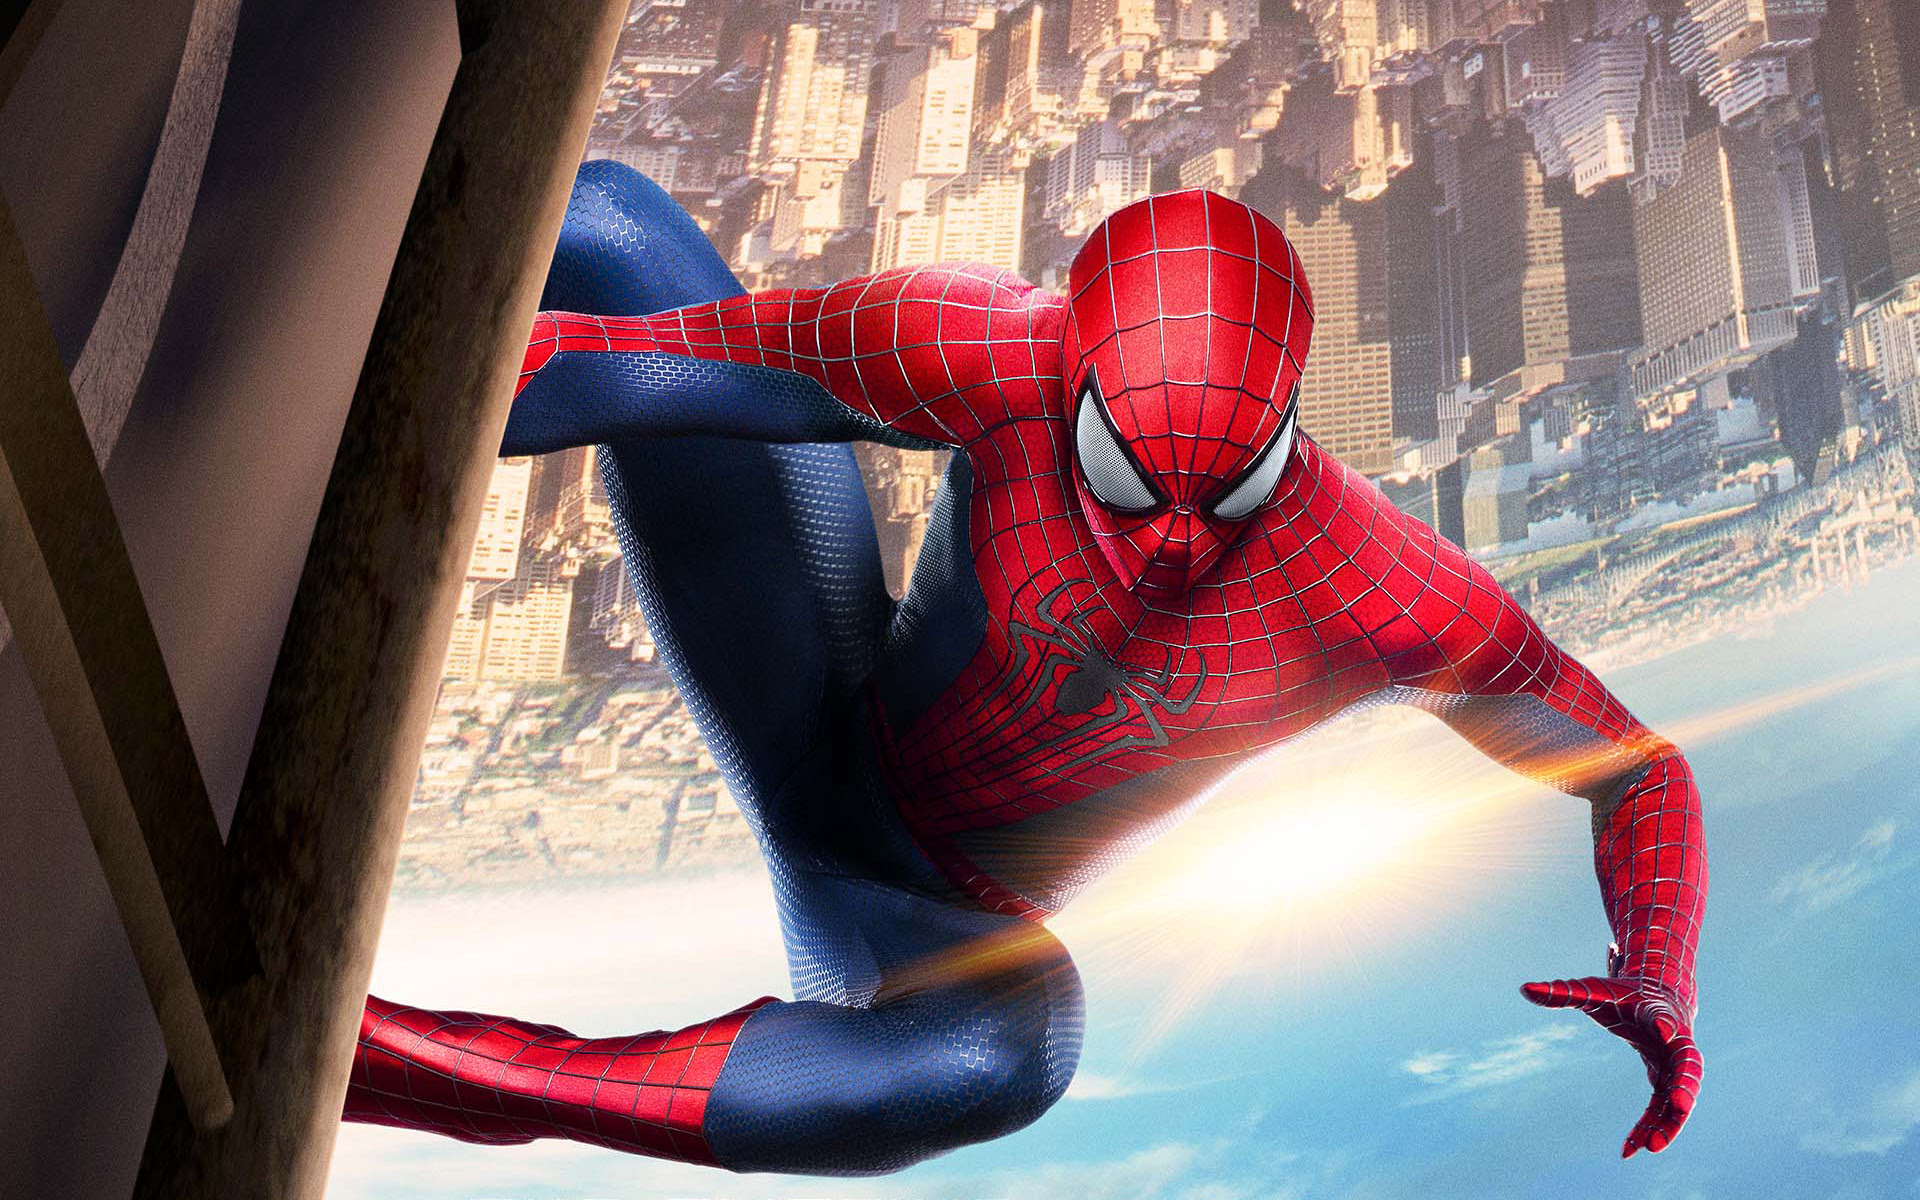 Amazing Spiderman Live Wp Android Apps On Google Play 1920x1200